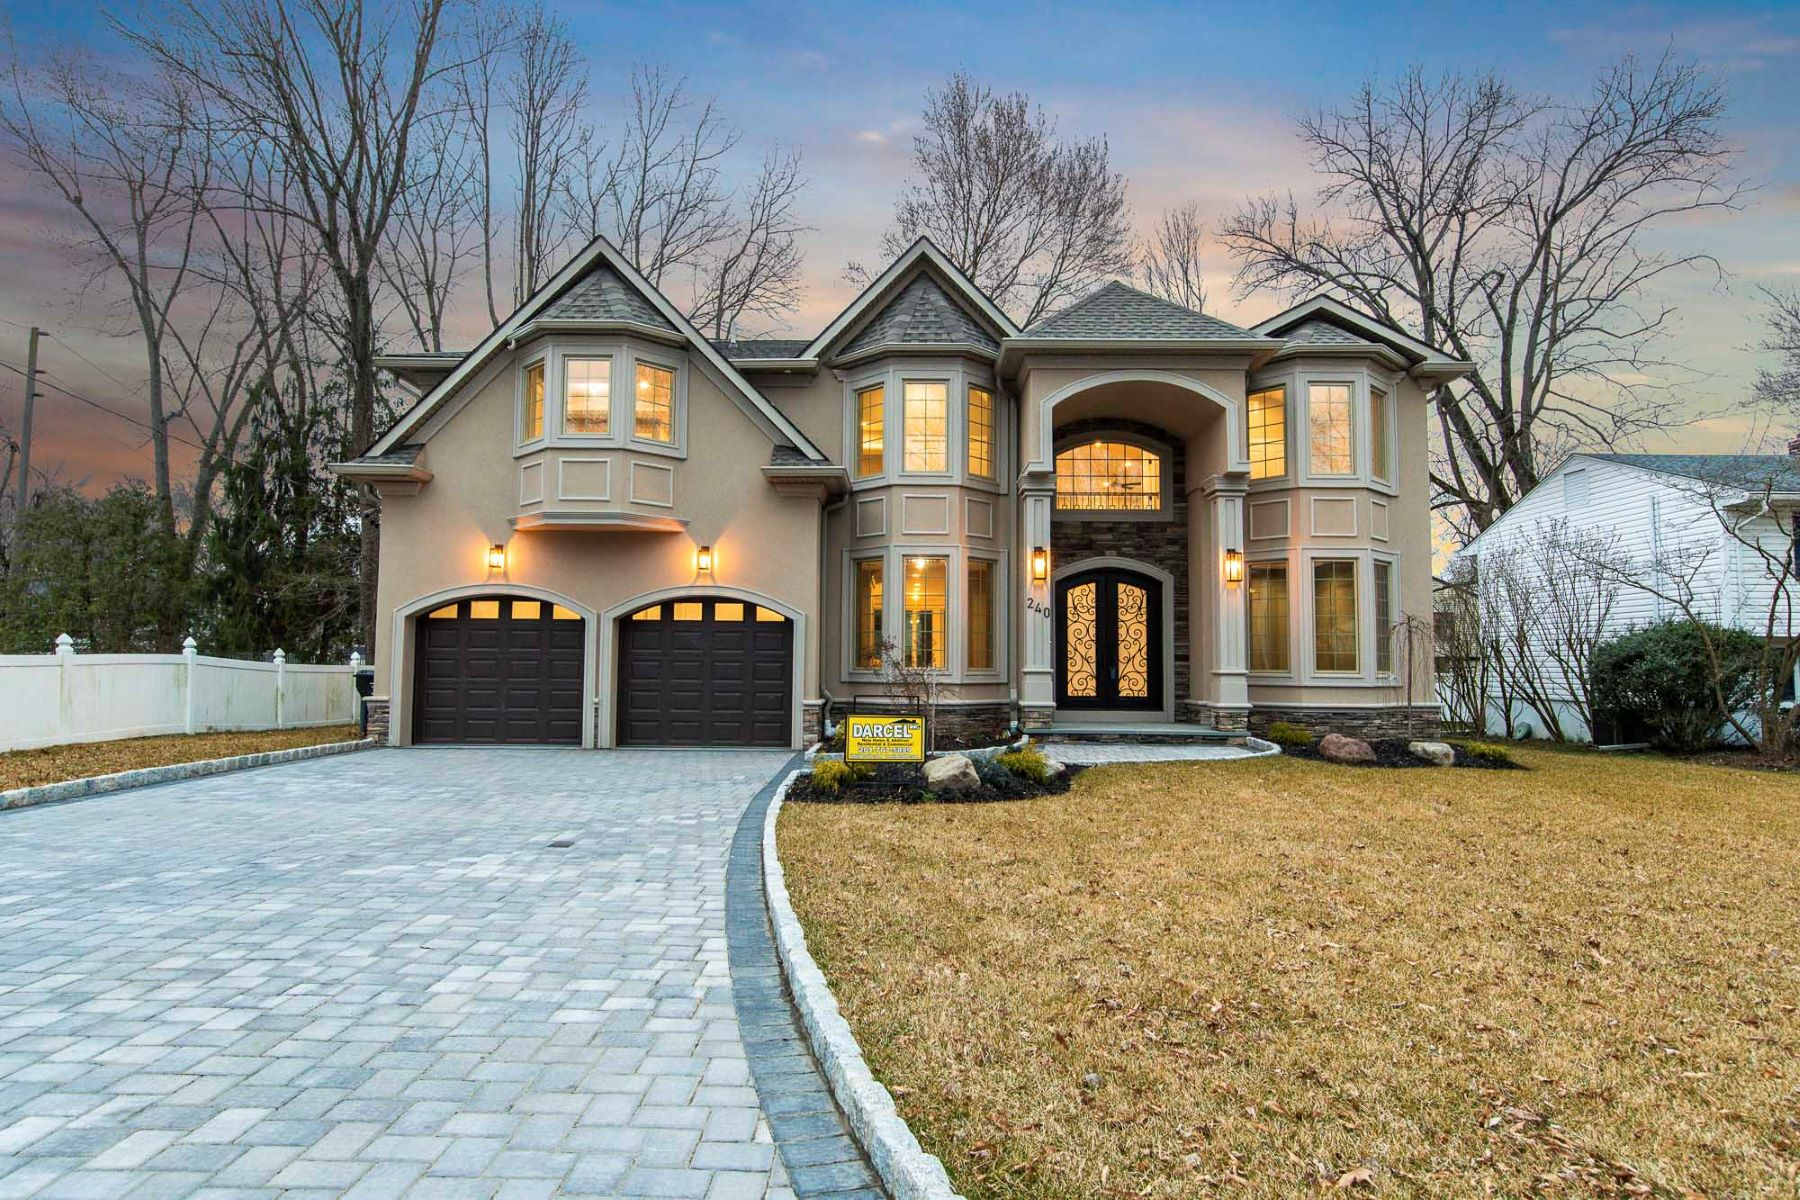 Single Family Homes for Active at Beautiful Colonial 240 Homestead Rd Paramus, New Jersey 07652 United States